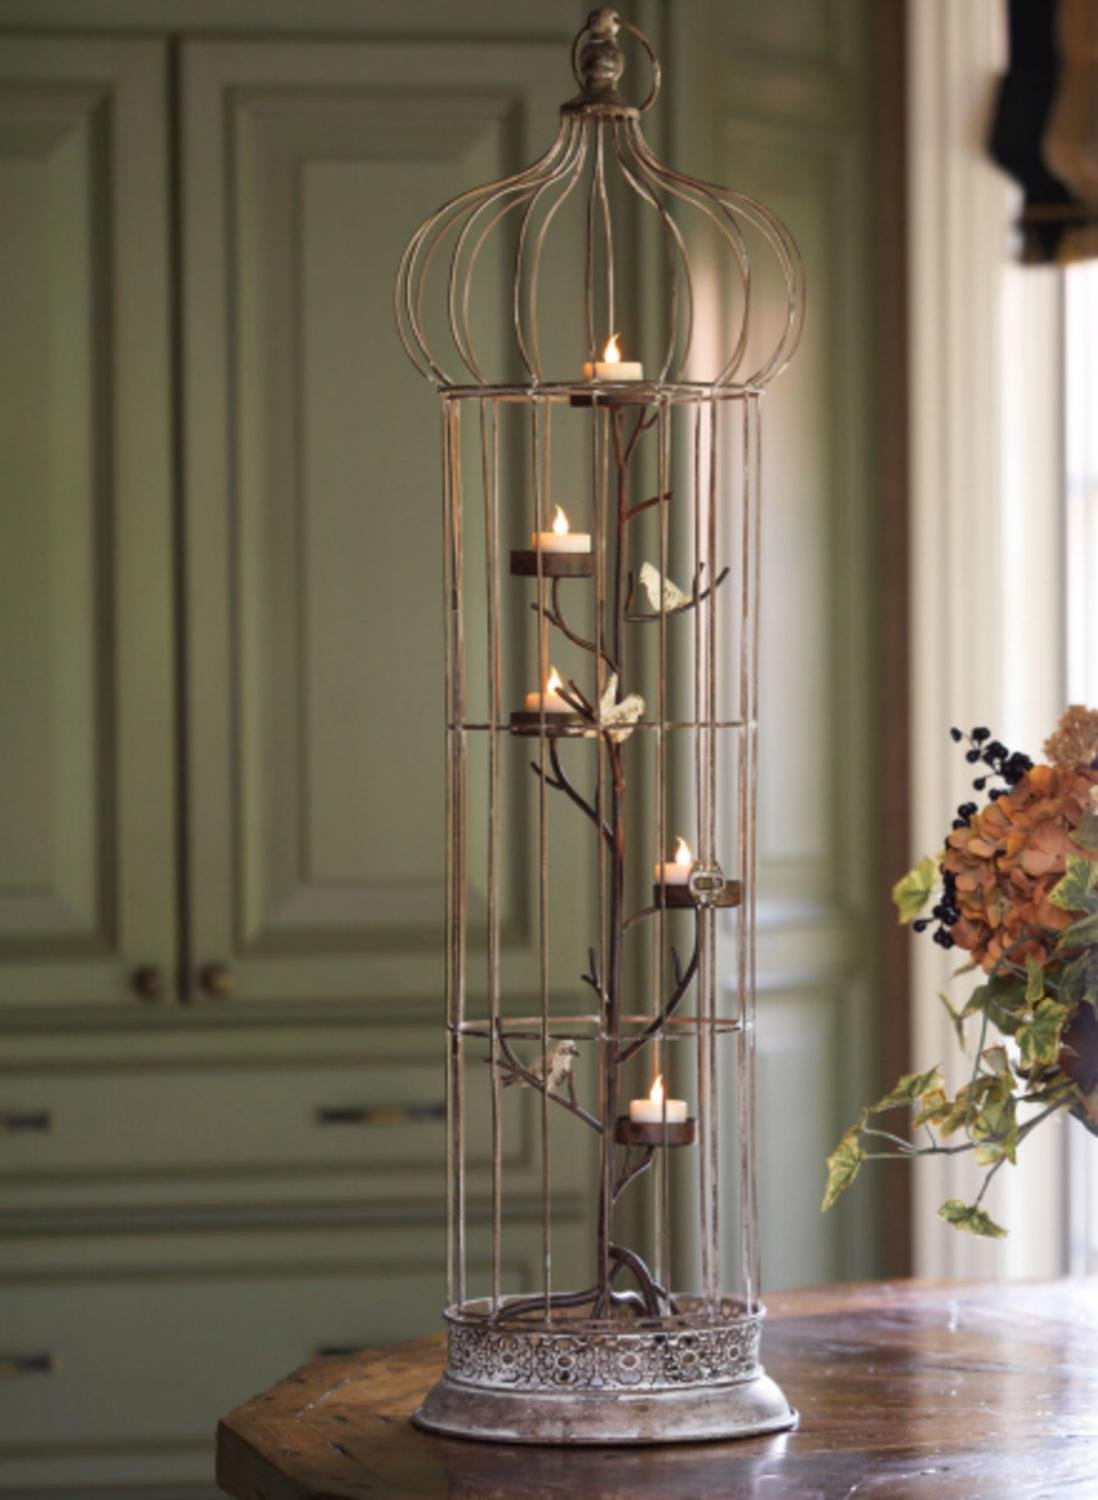 36'' Rustic Chic 5-Tea Light Candle Holder Bird Cage with Spotted Bird Accents